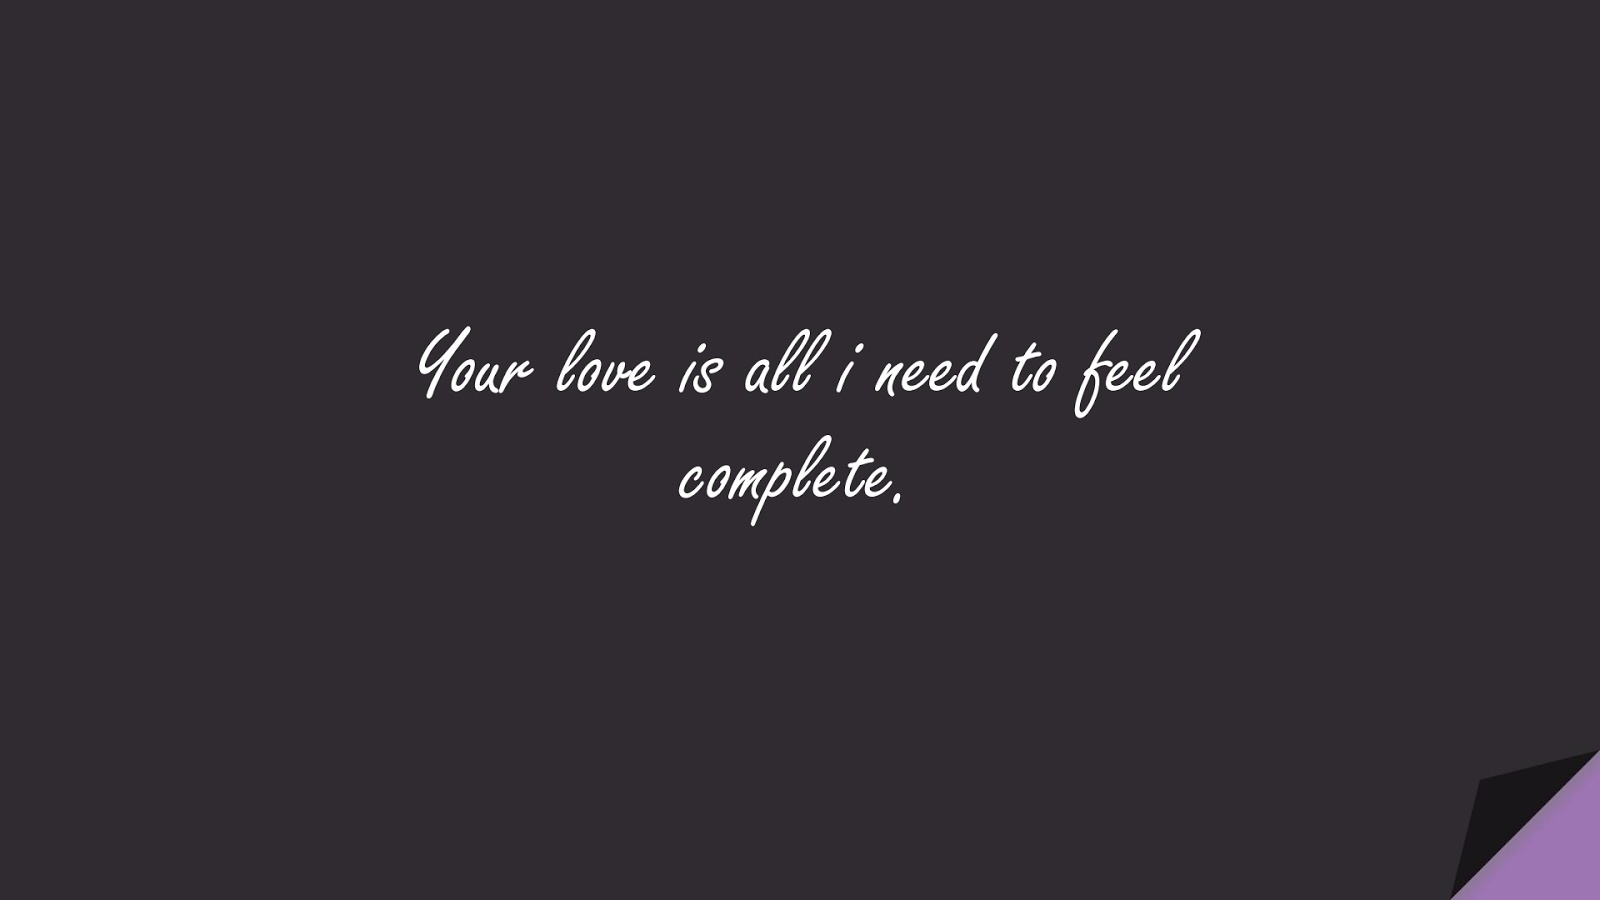 Your love is all i need to feel complete.FALSE